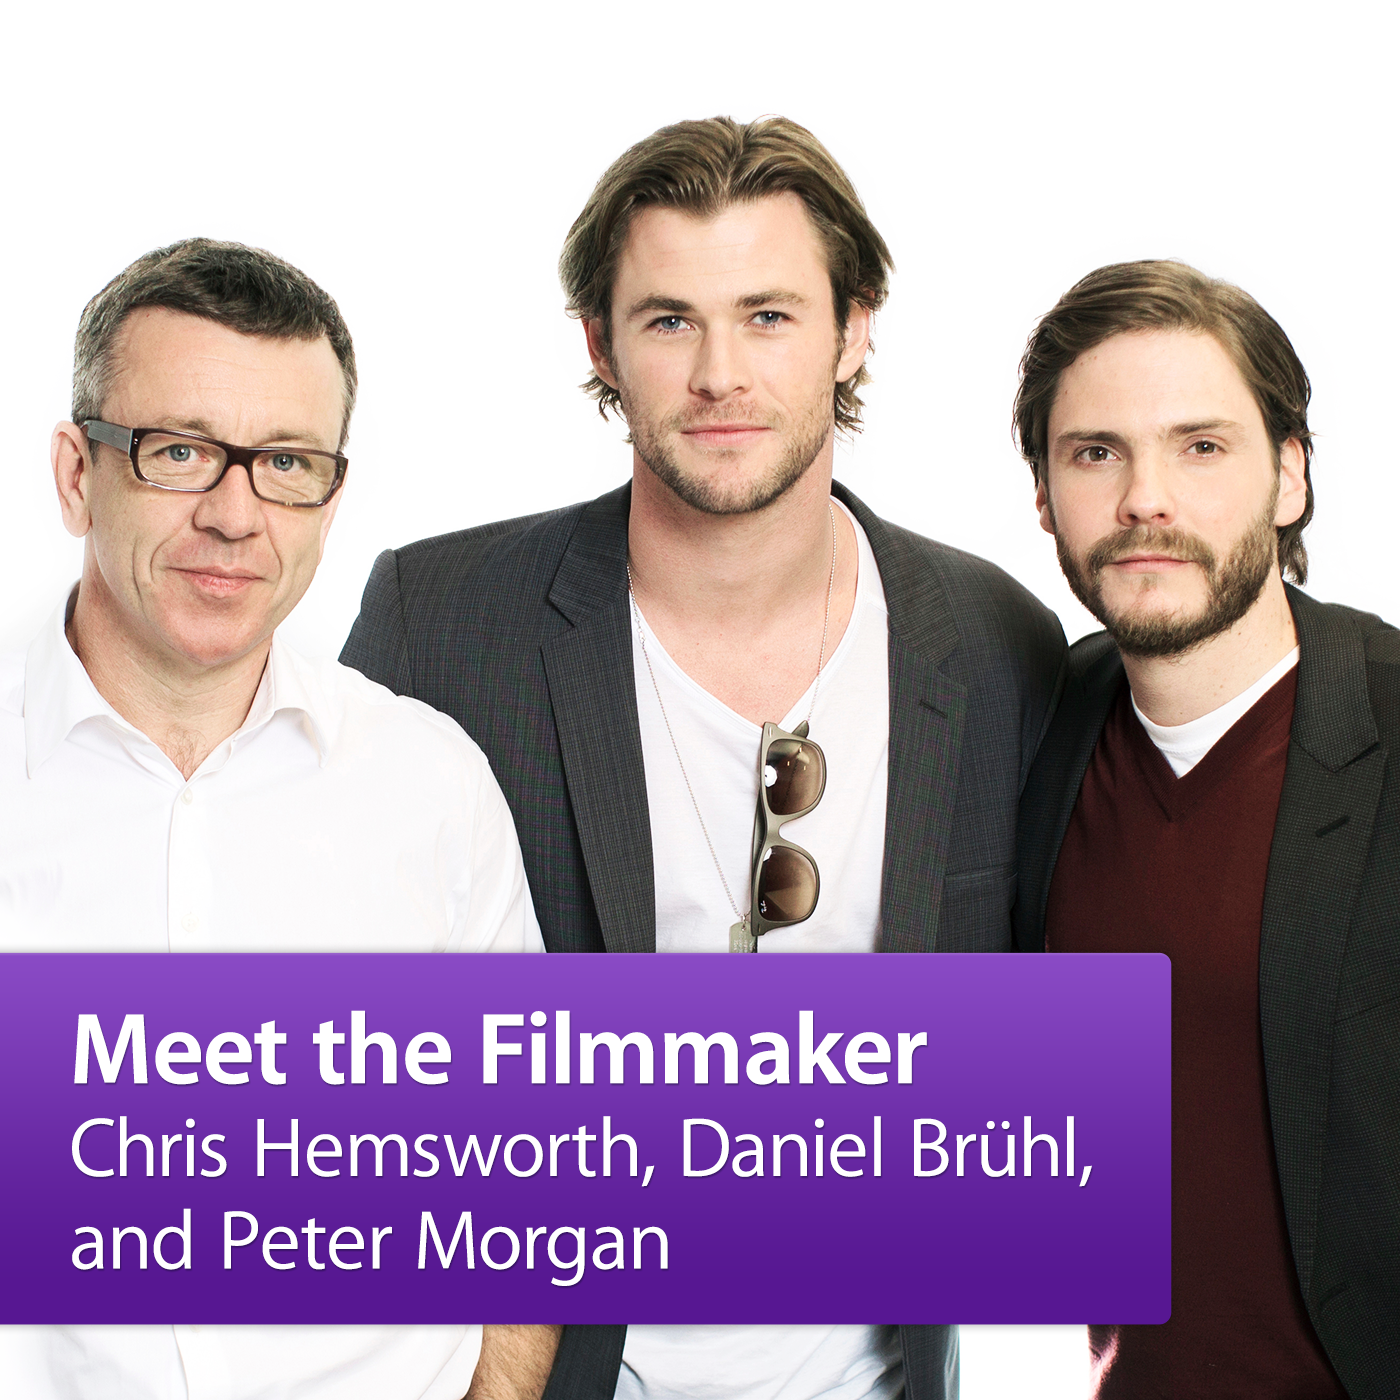 Chris Hemsworth, Daniel Brühl, and Peter Morgan: Meet the Filmmaker